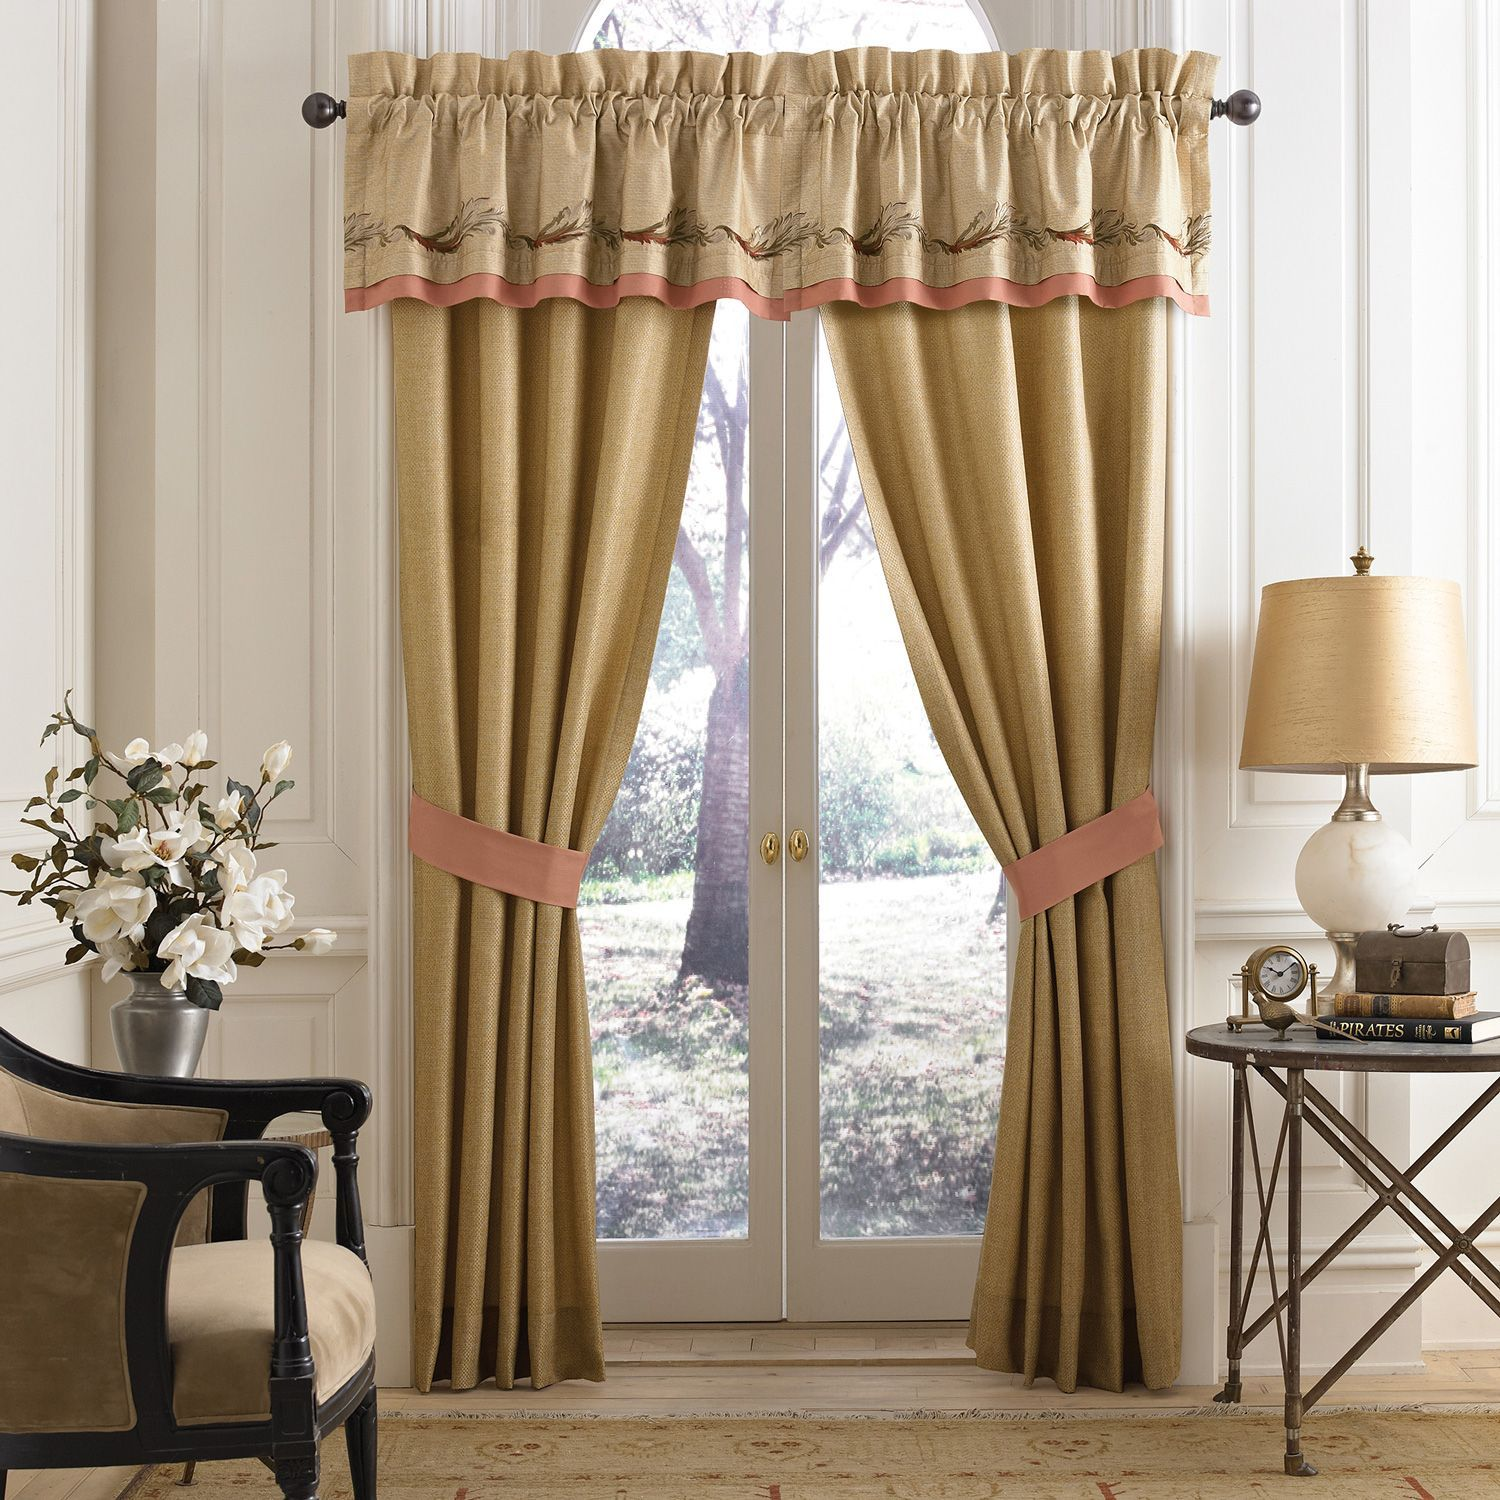 Normandy bedding collection wheat mary grassia pinterest